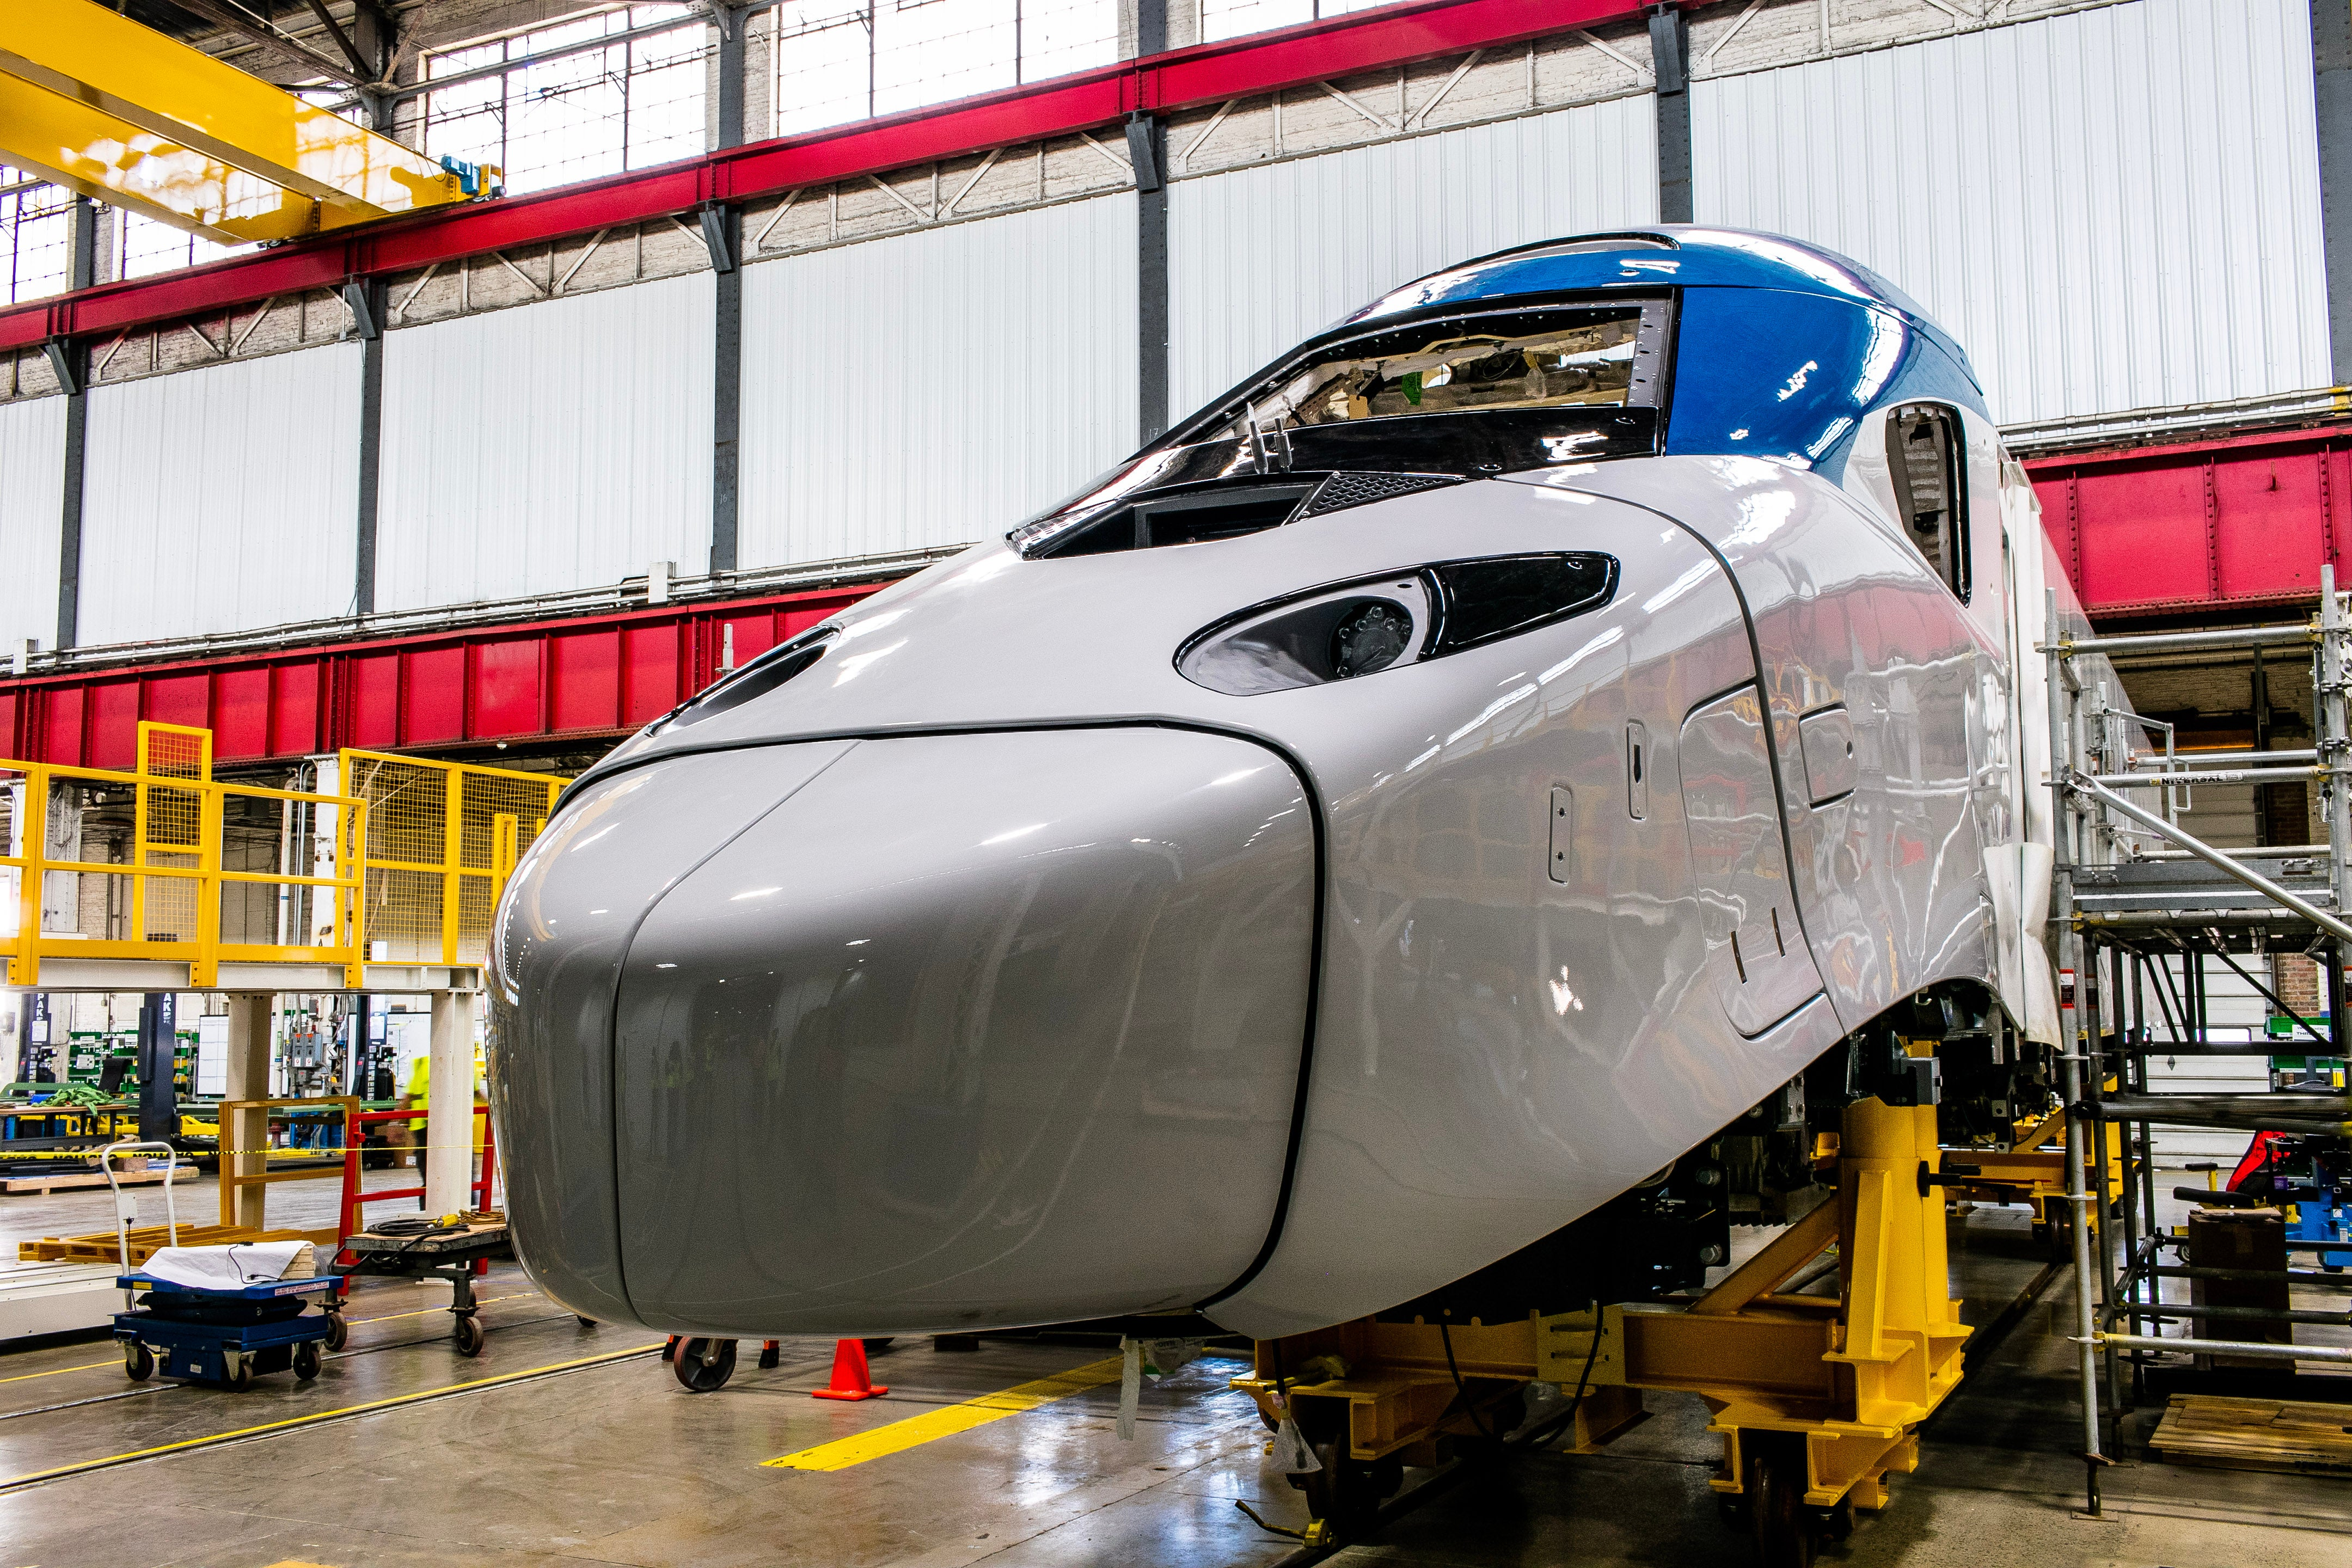 Here Are Photos of Amtrak's New Acela Trains Being Built